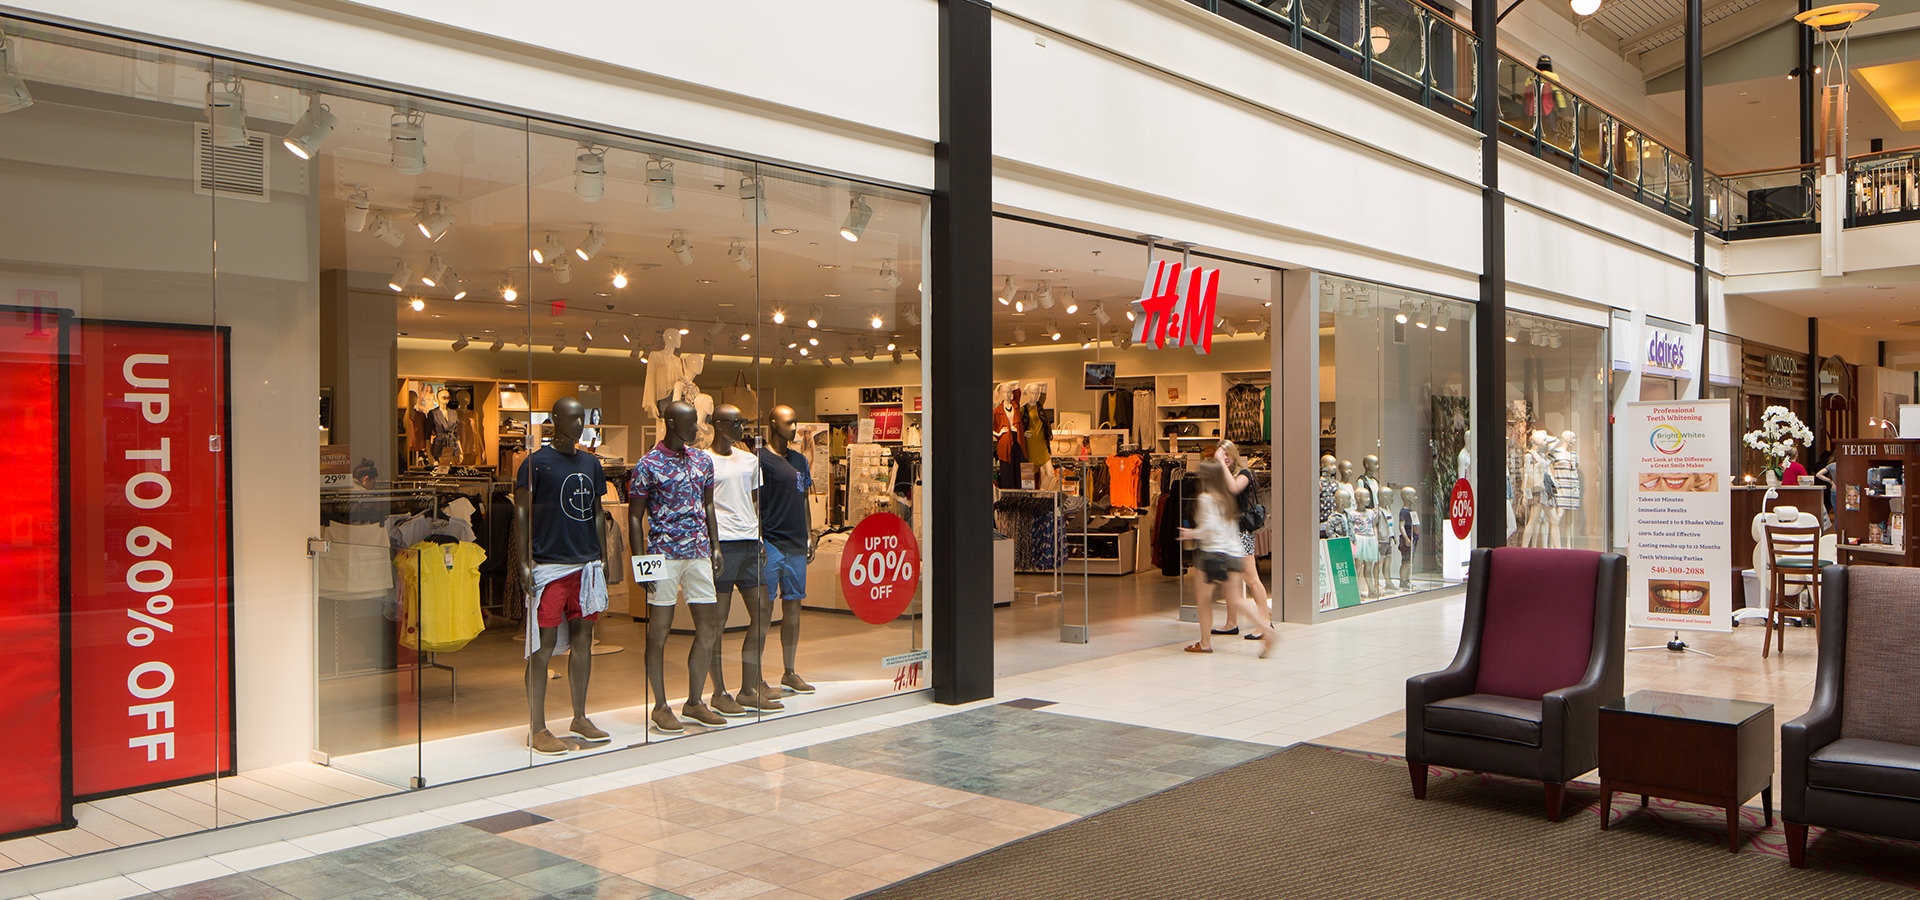 H&M Near Me In Dulles, VA | Dulles Town Center Dulles Town Center Map on